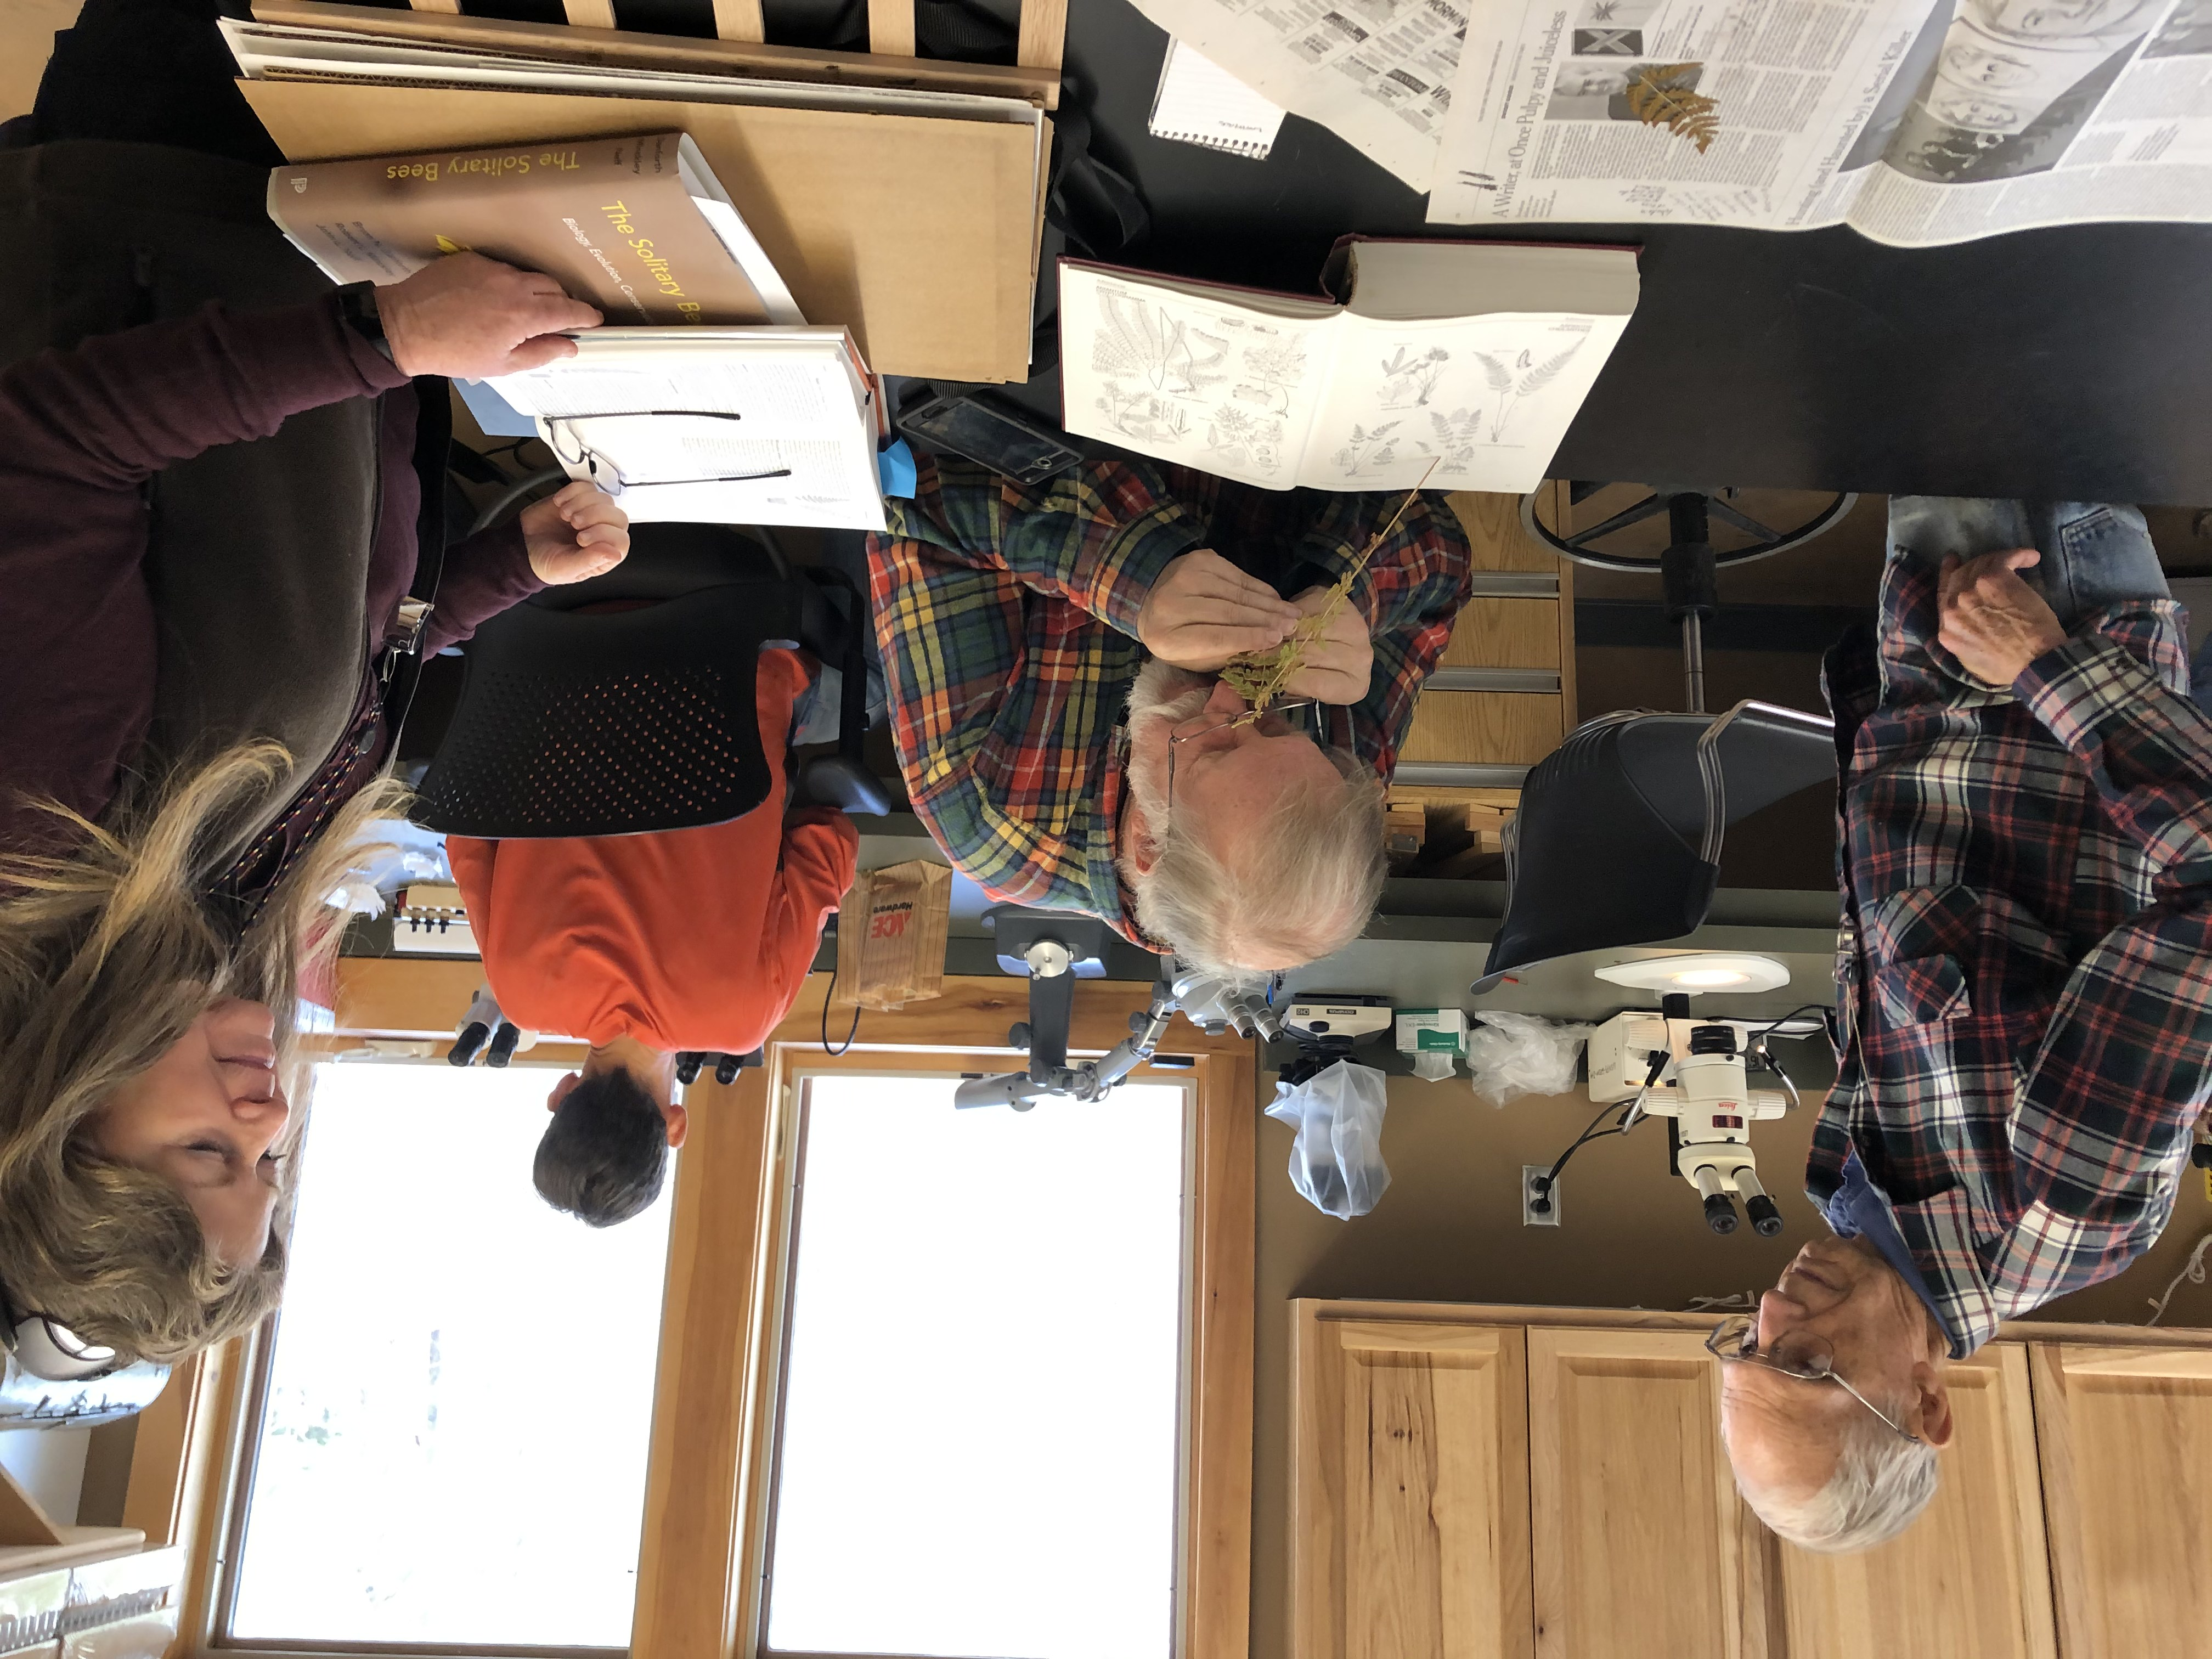 Dan Pittillo looks on as Keith Langdon investigates specimens for their work with the Gang of Researchers in Search of Life's Diversity (GRISLD).